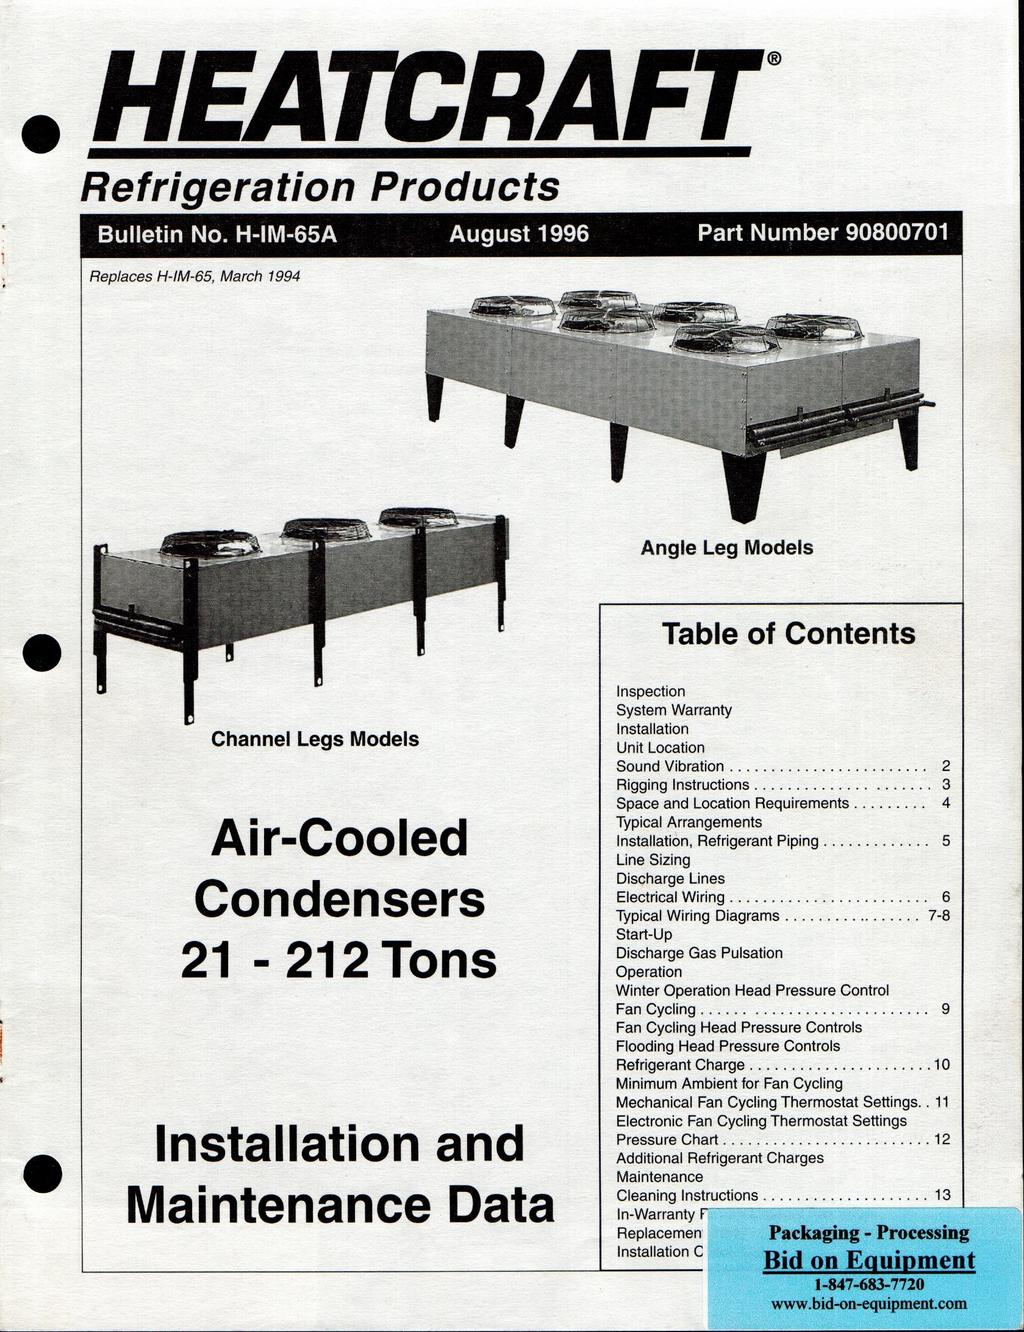 HEATCRAFT. Air-Cooled Condensers Tons. Installation and Maintenance ...